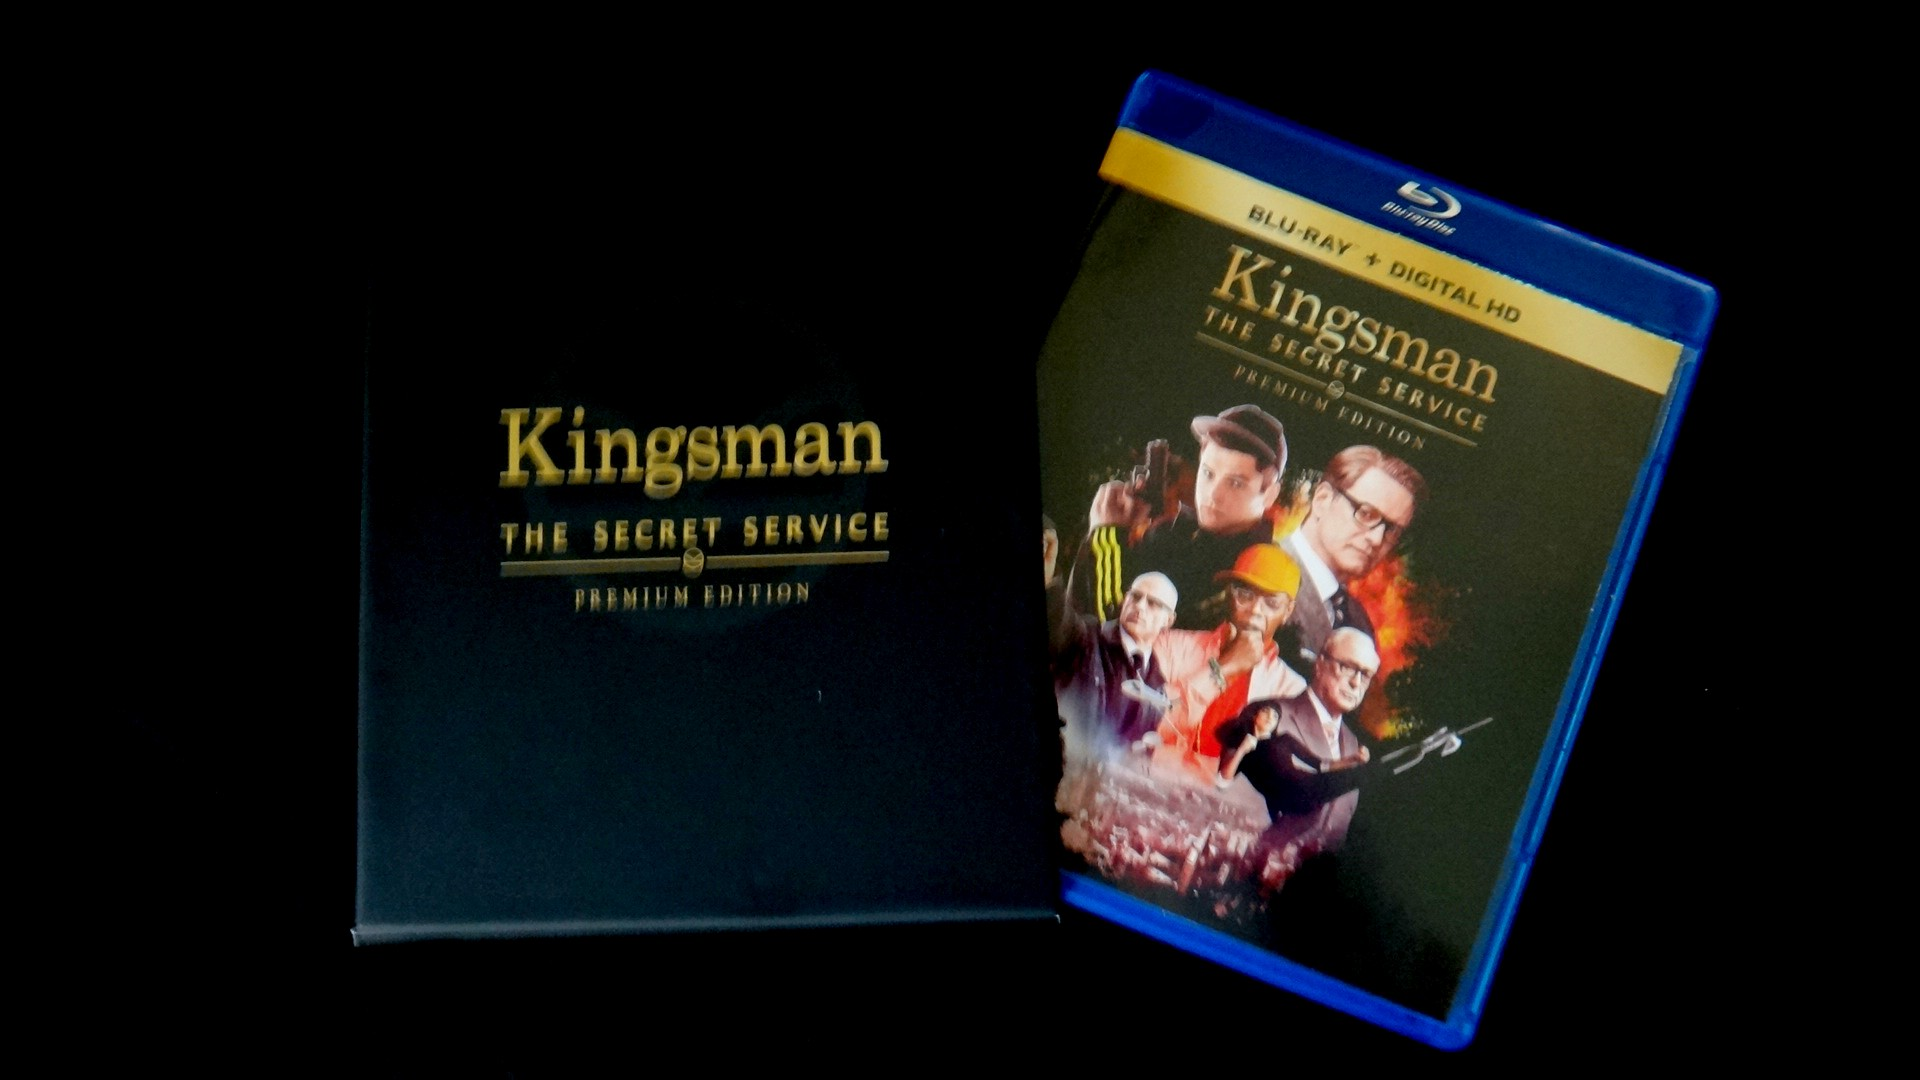 kingsman front bluray.jpg